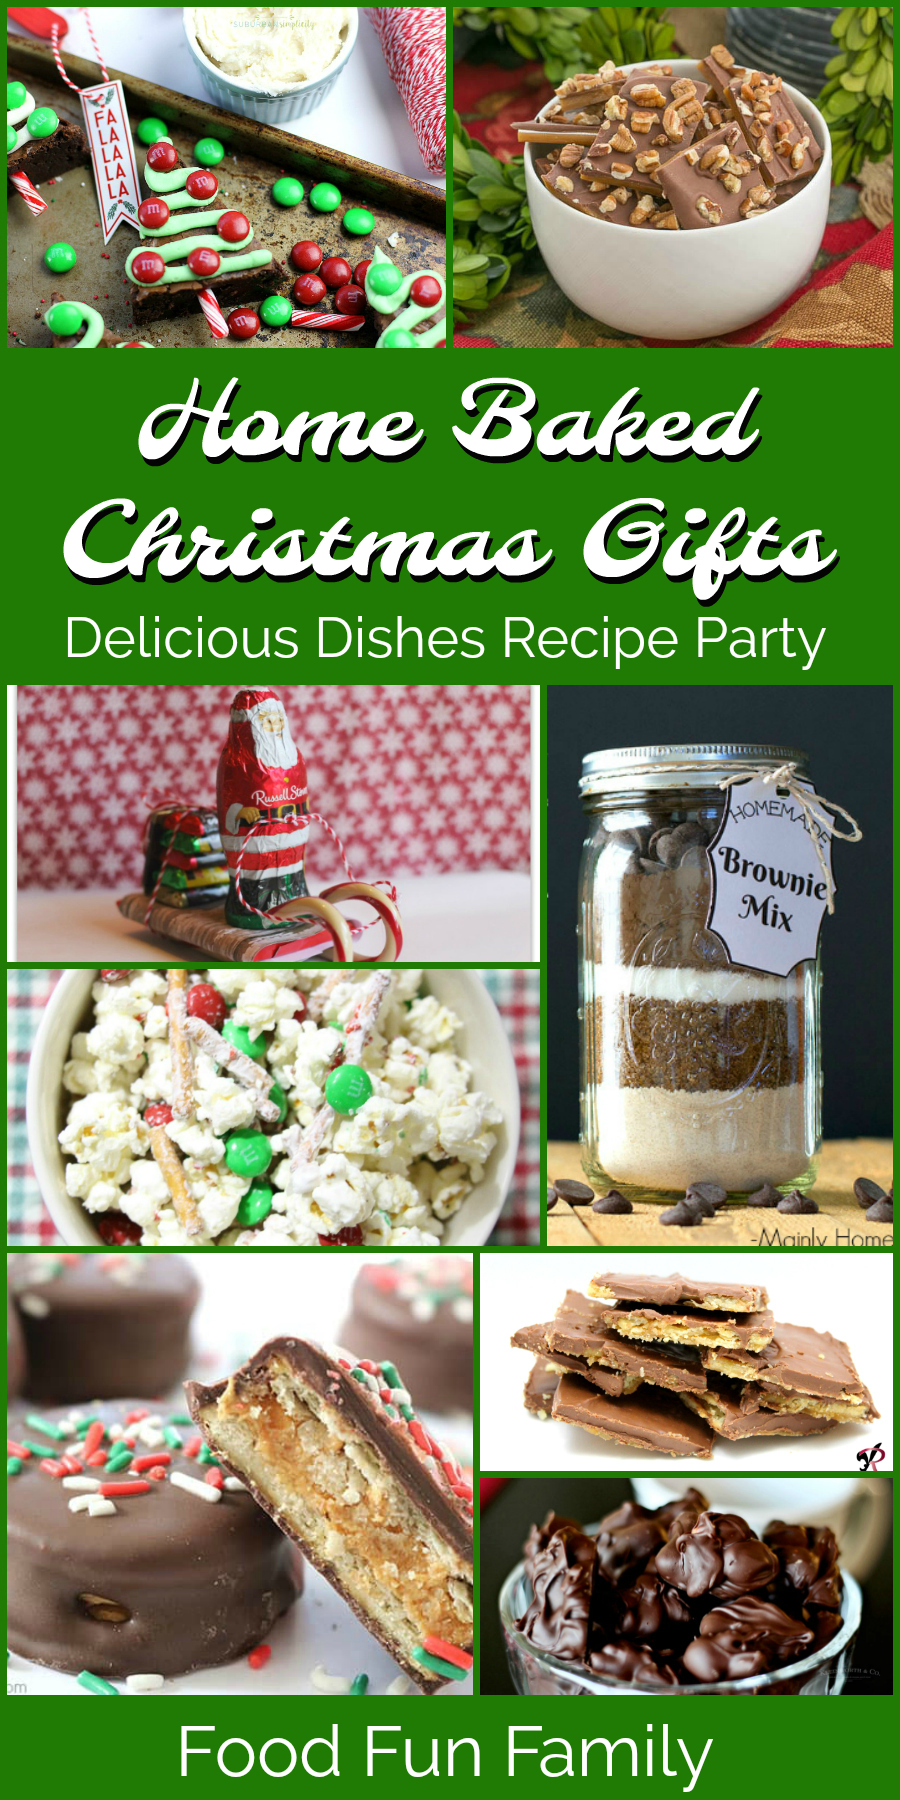 Home Baked Christmas Gifts - Delicious Dishes Recipe Party